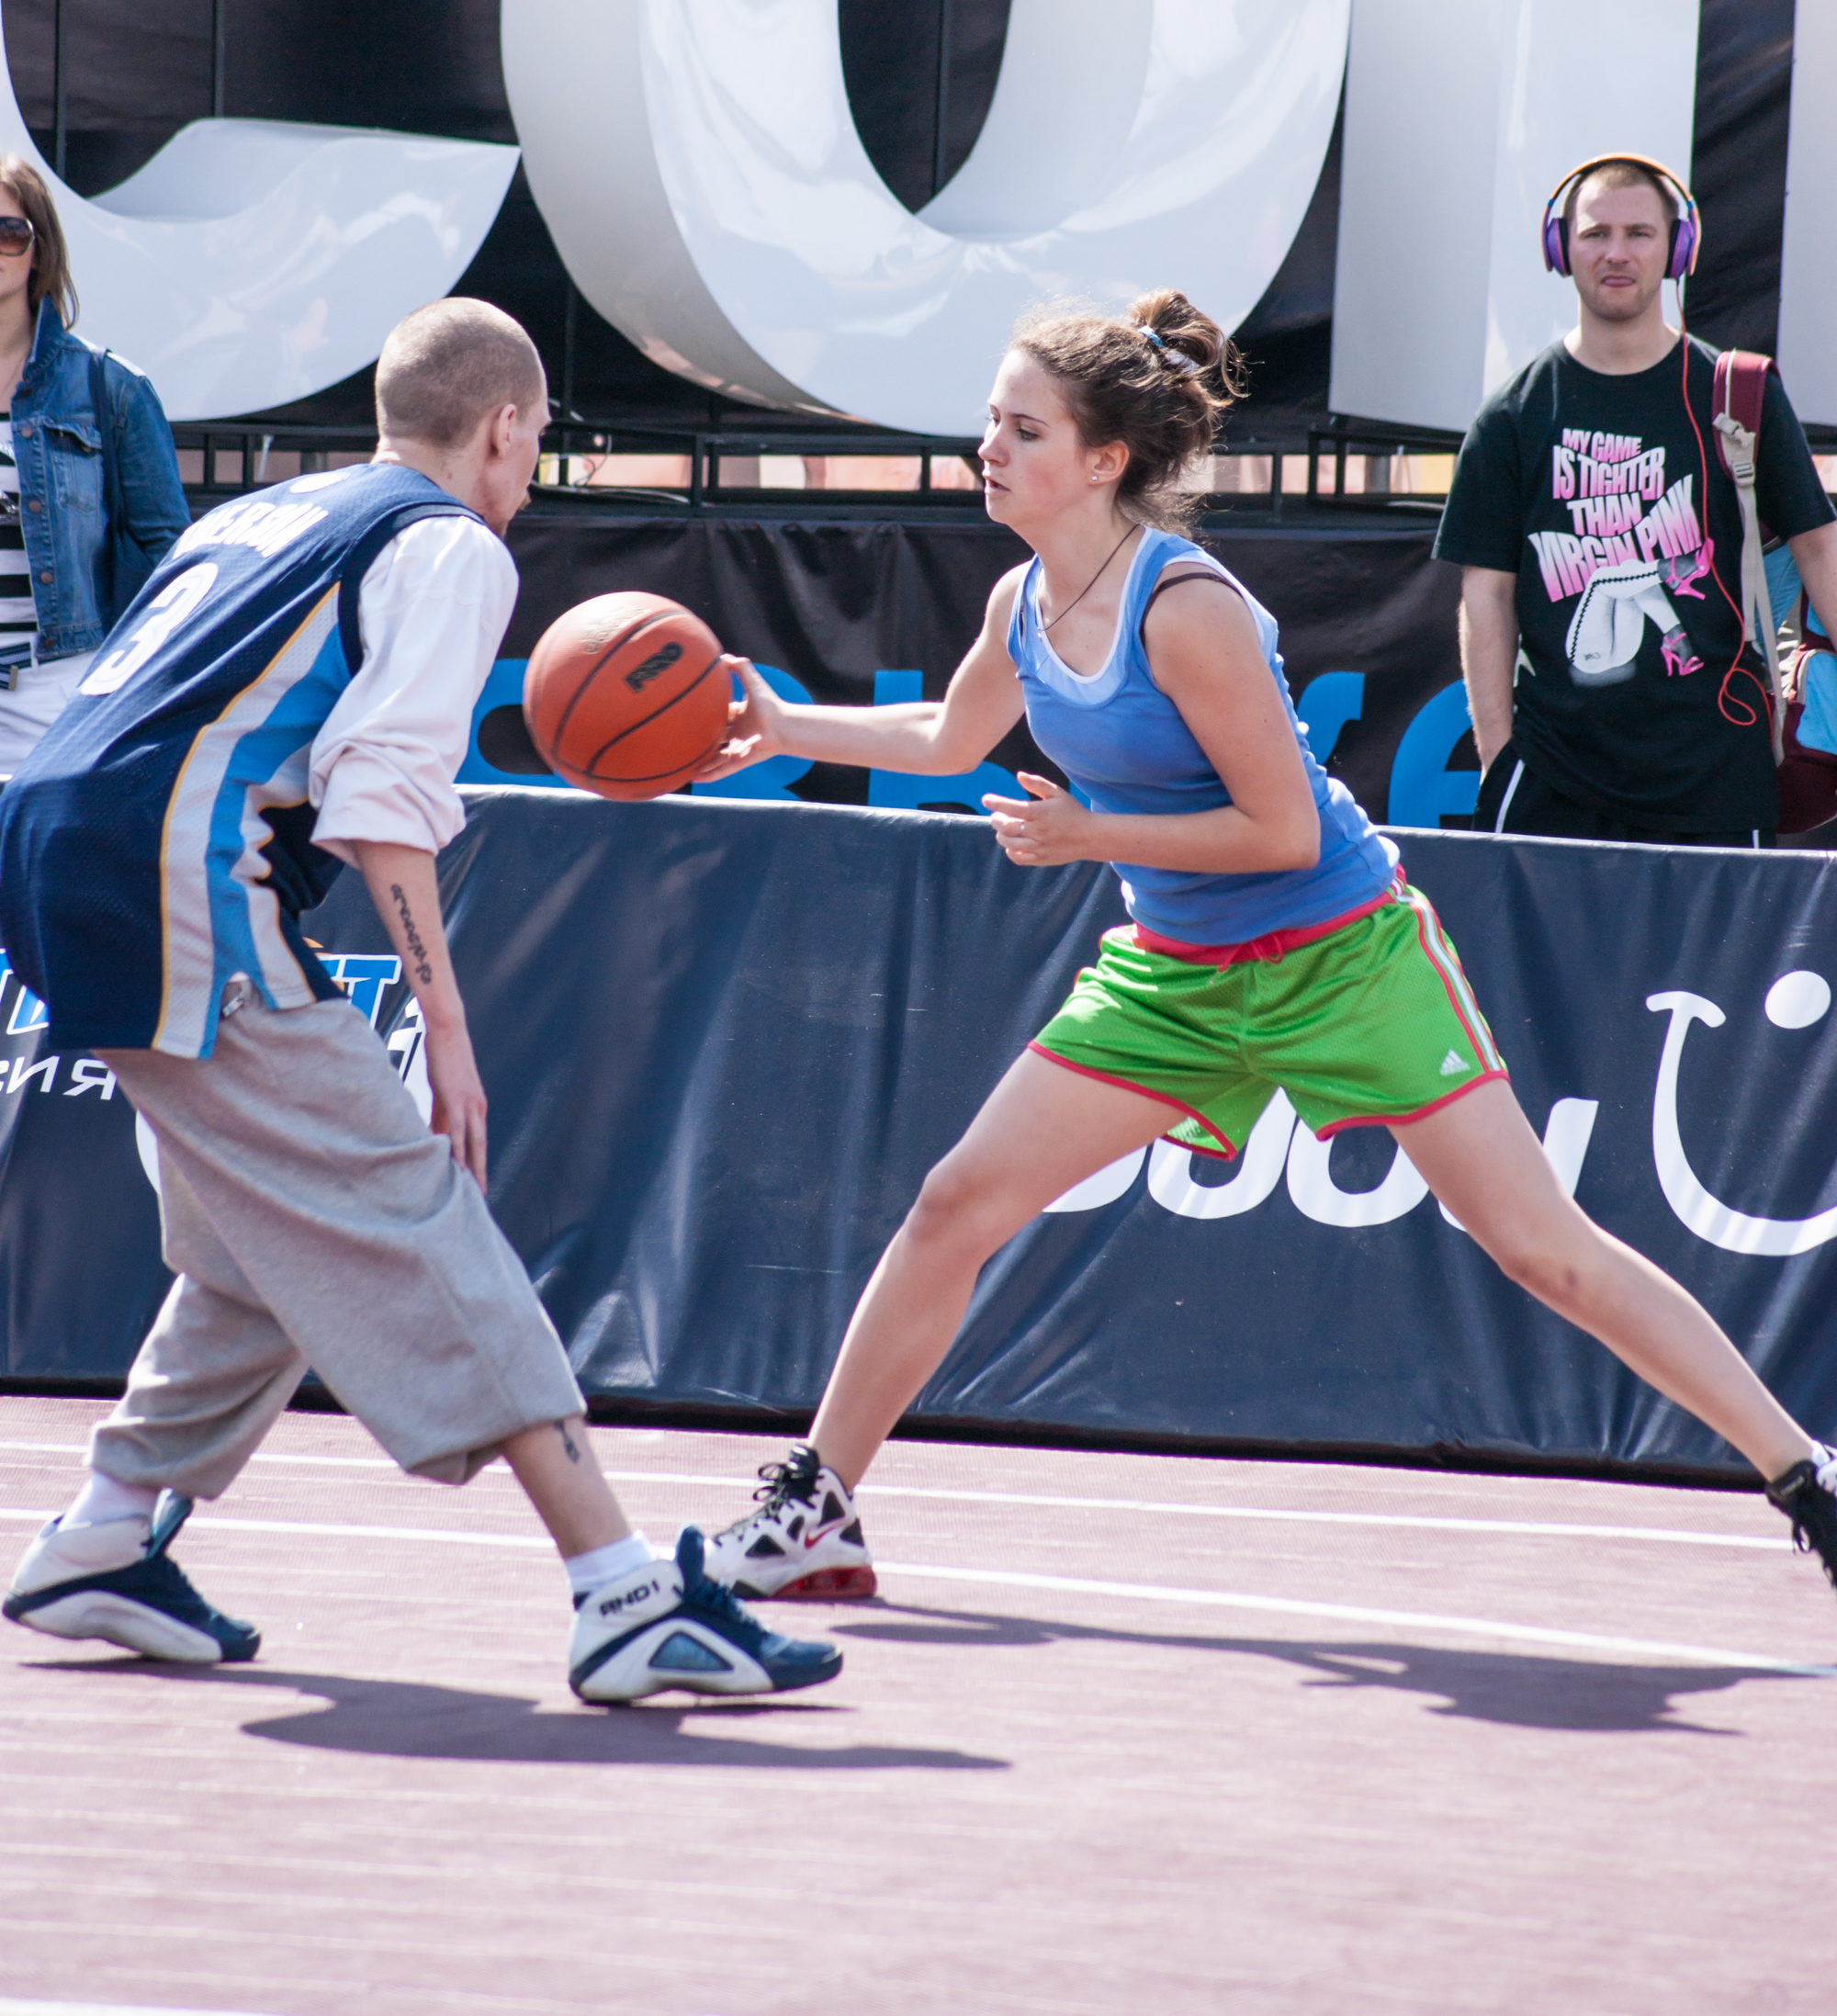 Street-Basketball in Moskau